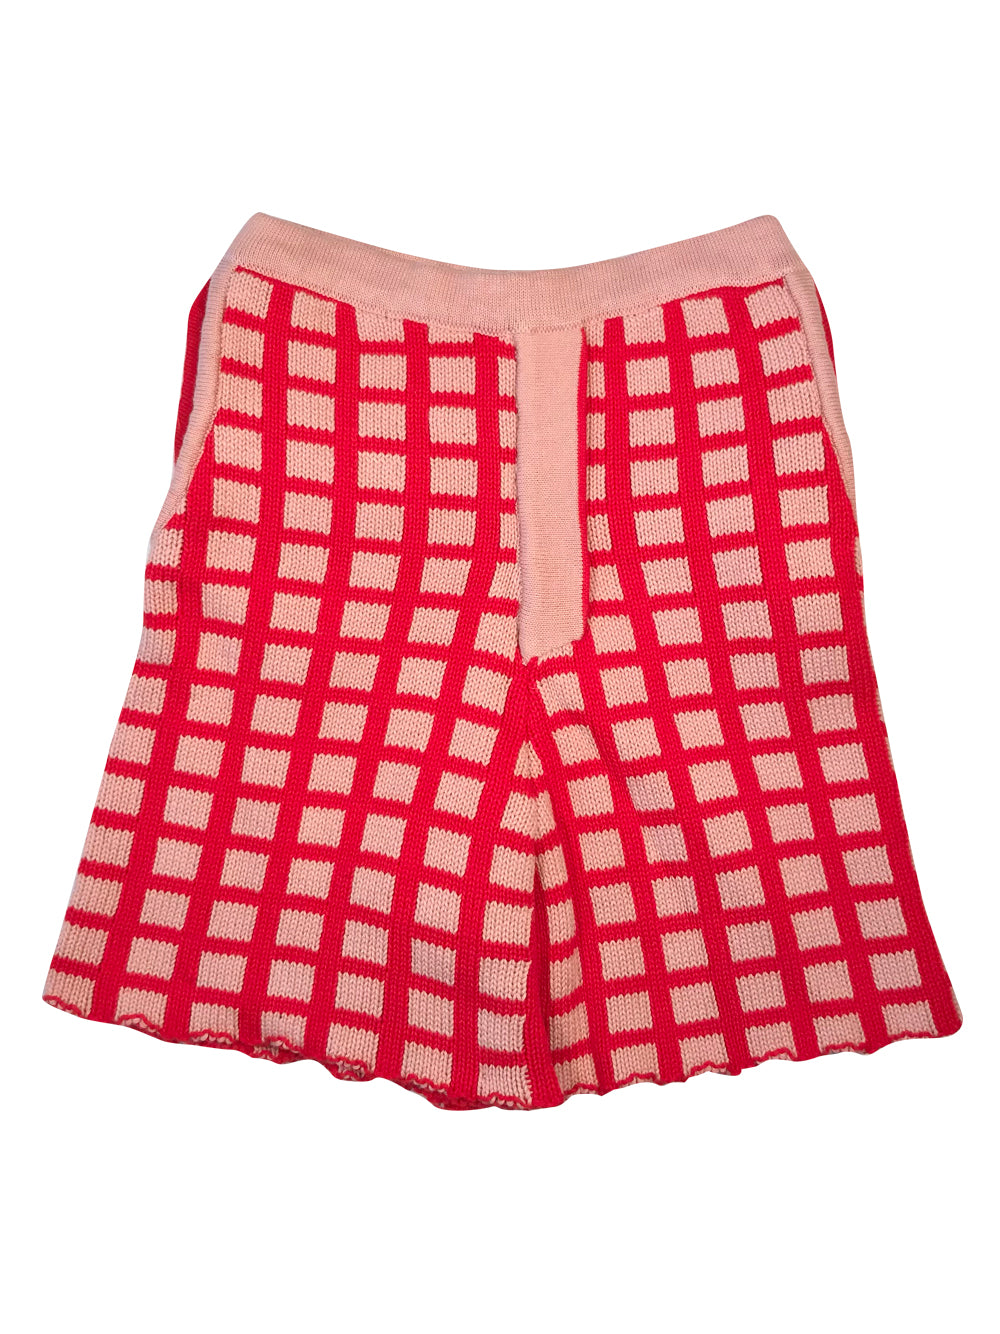 Pink and Red Knit Shorts